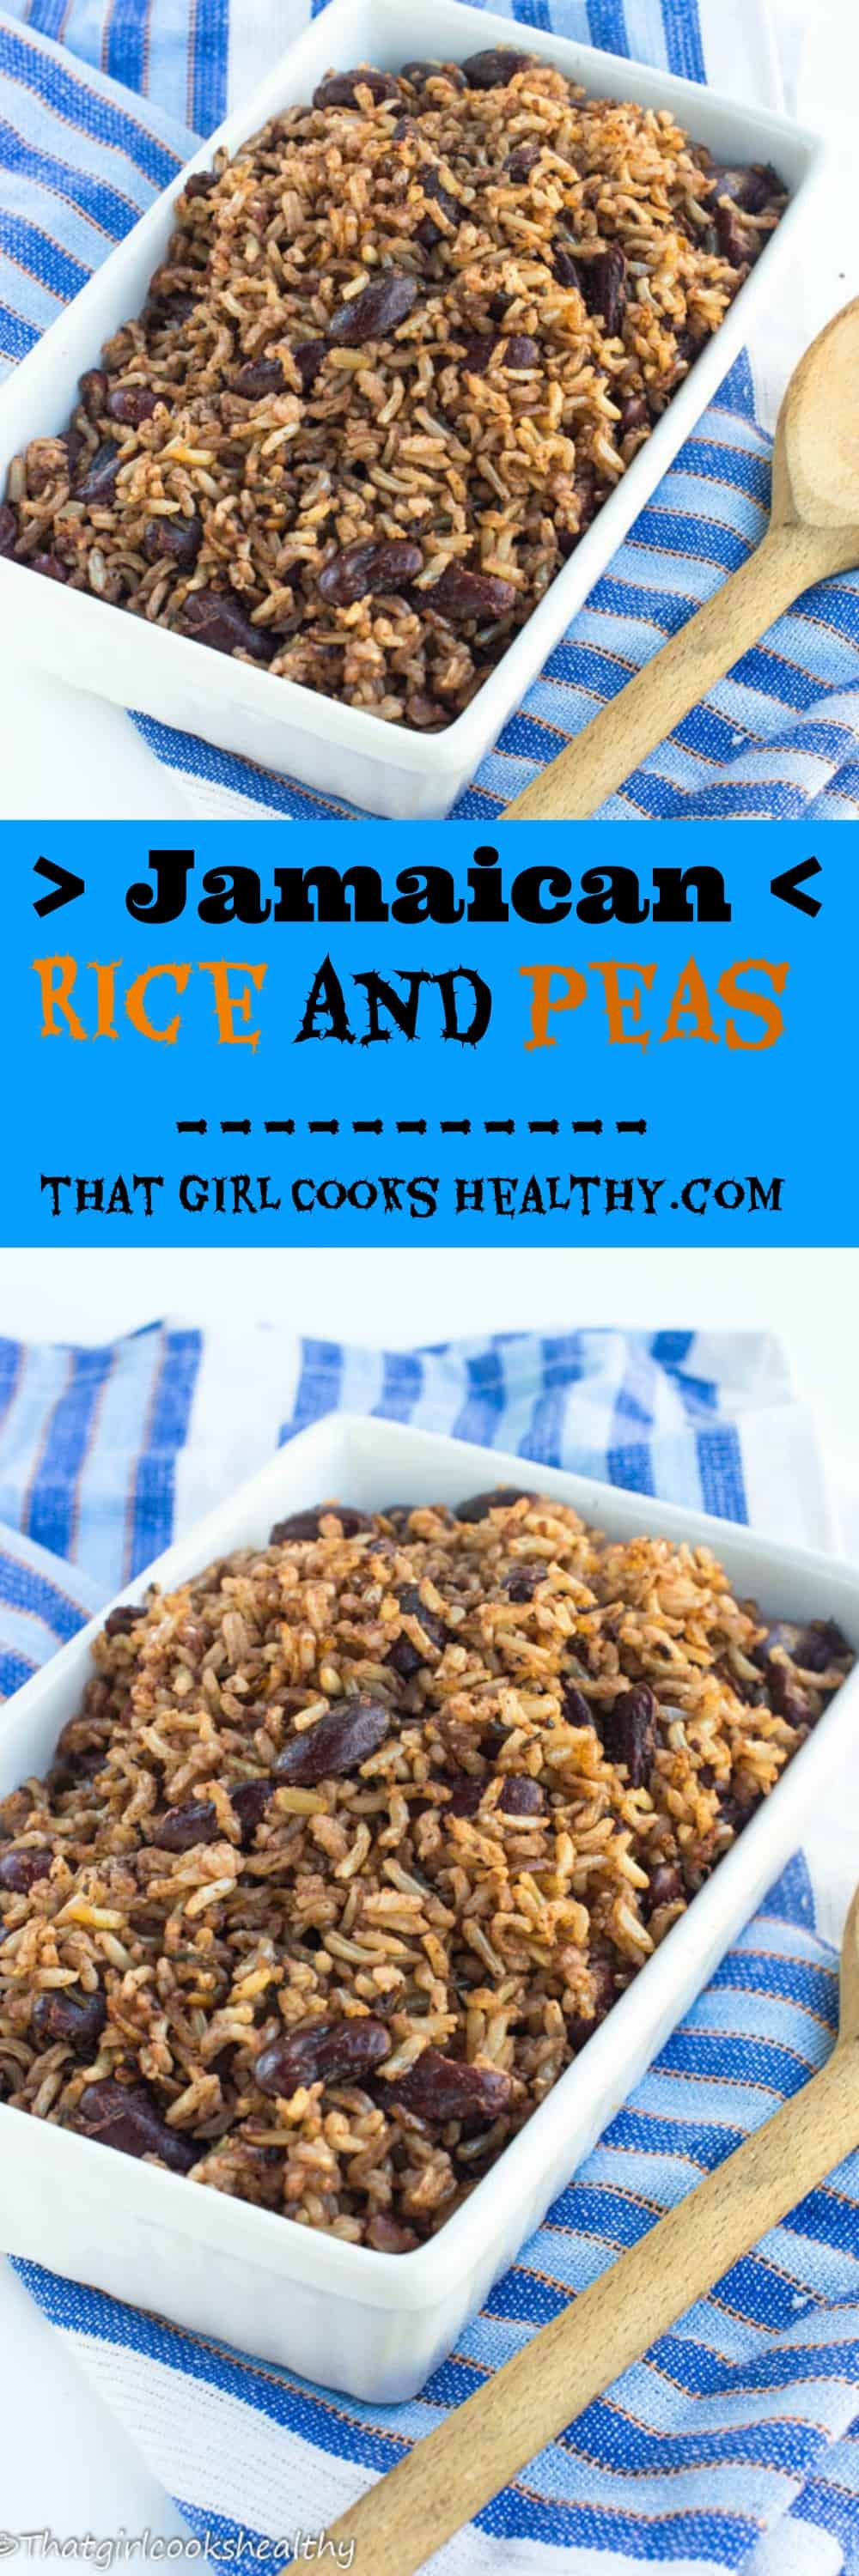 rice and peas recipe  jamaican style  that girl cooks